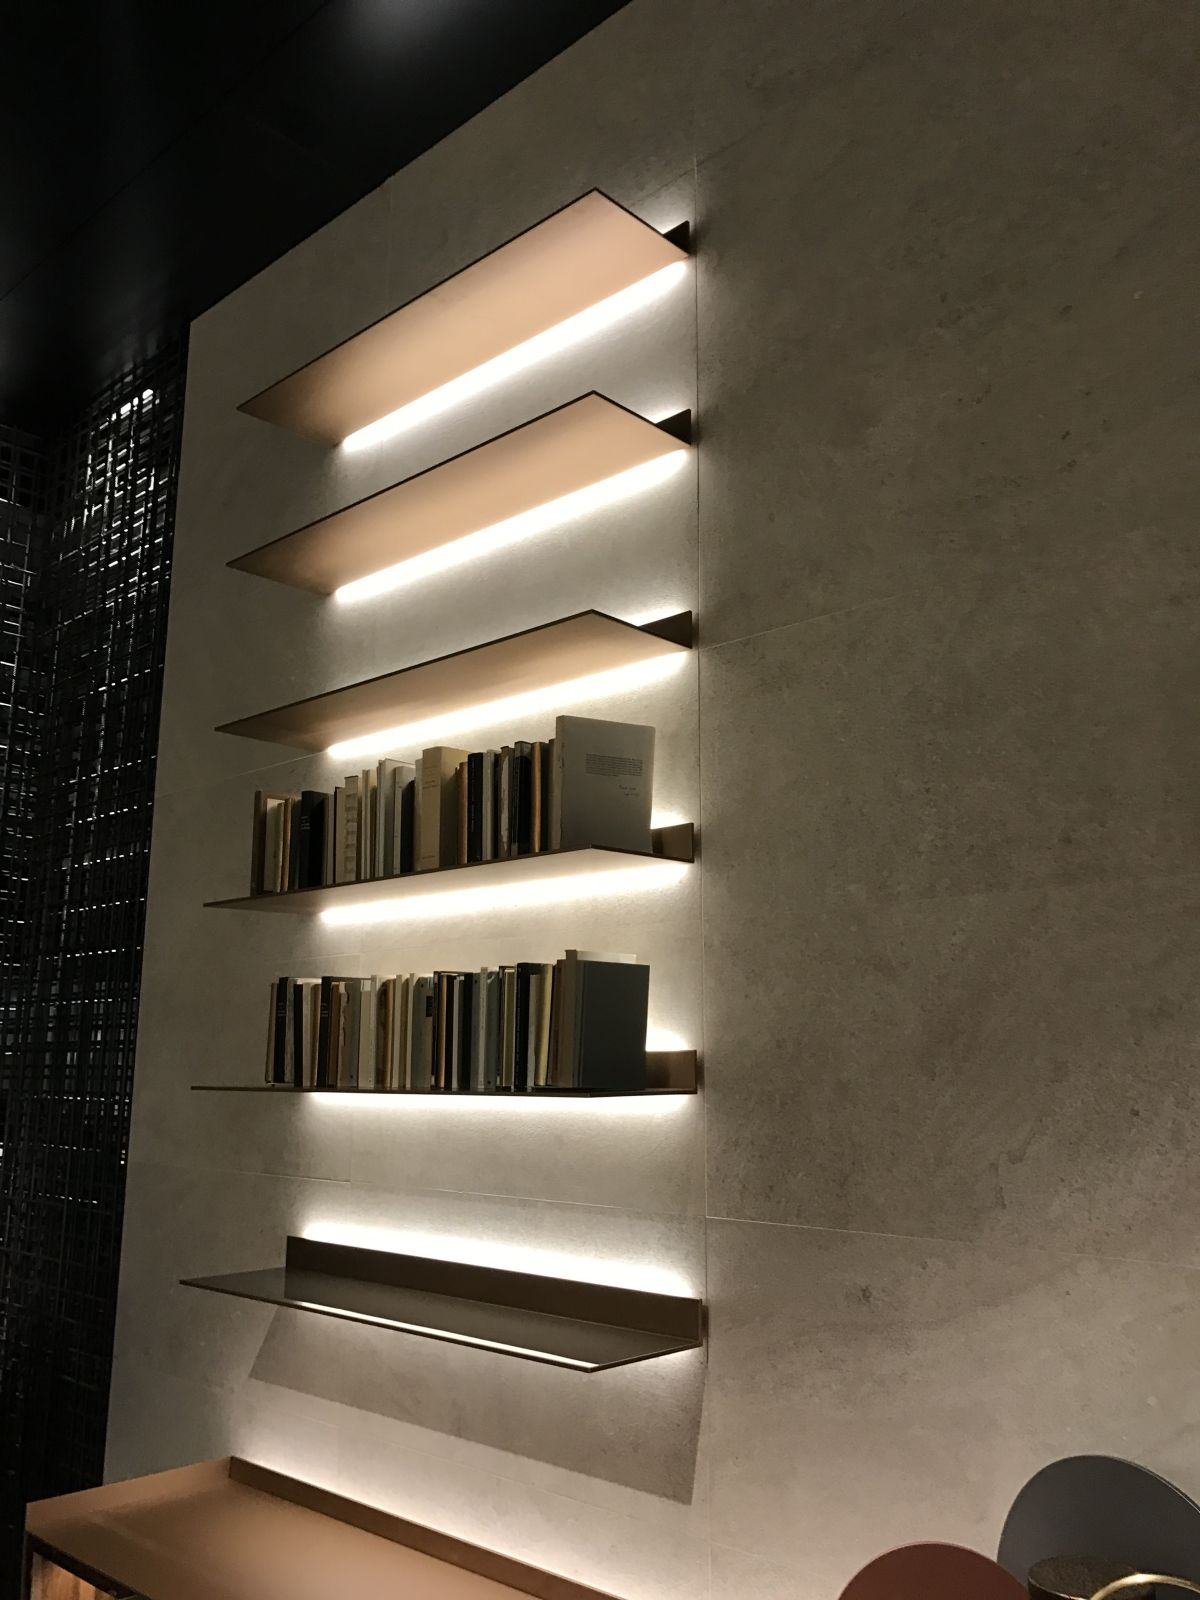 LED light strips are very effective at making wall shelves and their contents stand out in a dramatic way